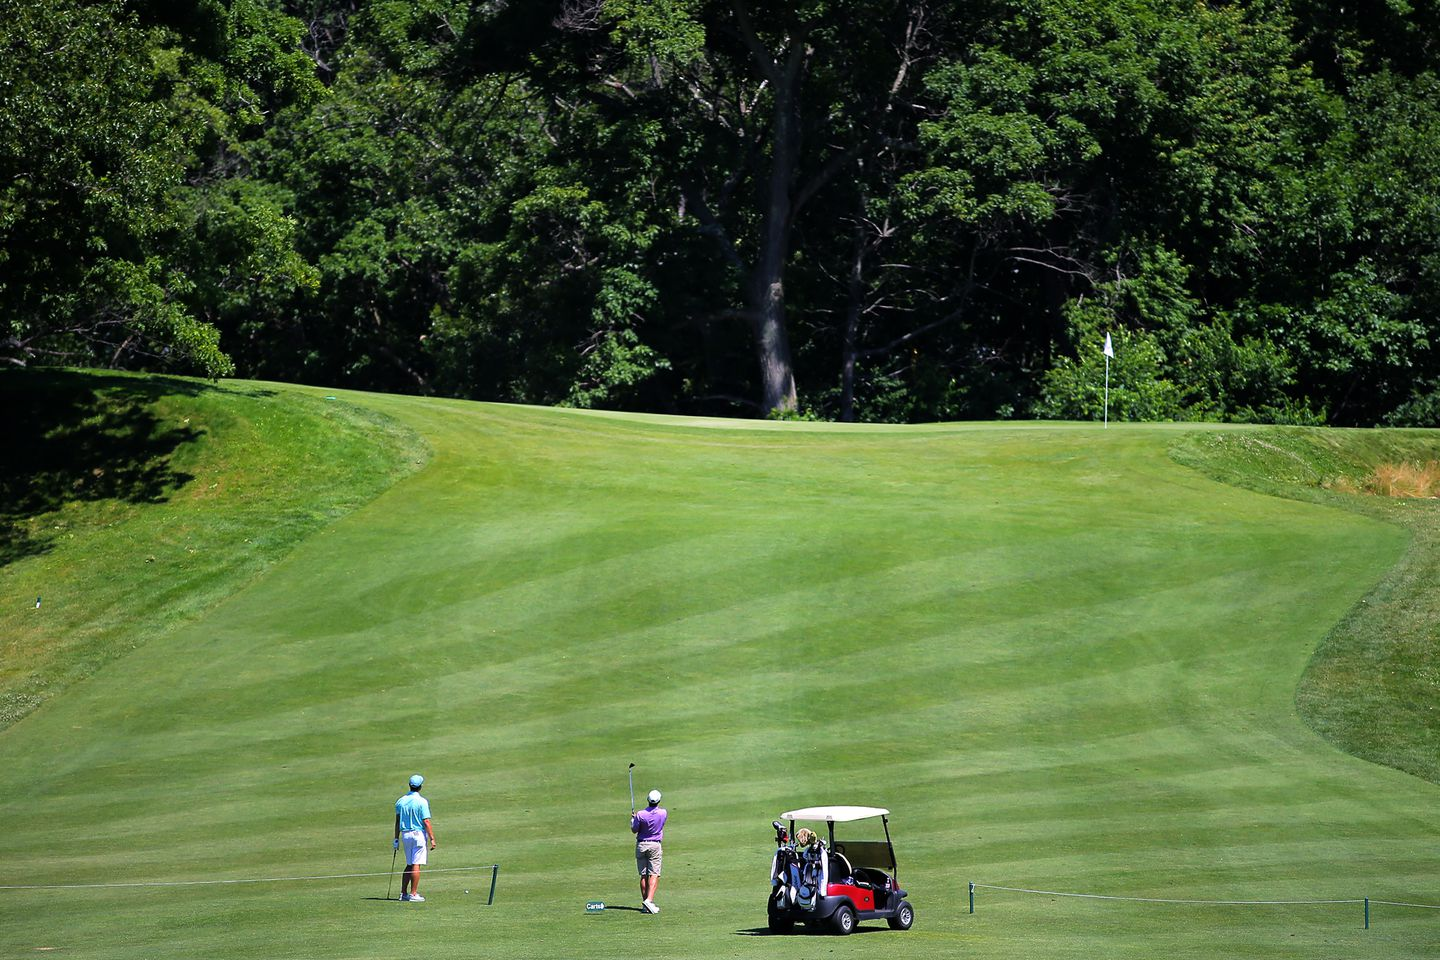 Anyone who played George Wright Golf course in the 1980s or '90s would be blown away by its current condition.